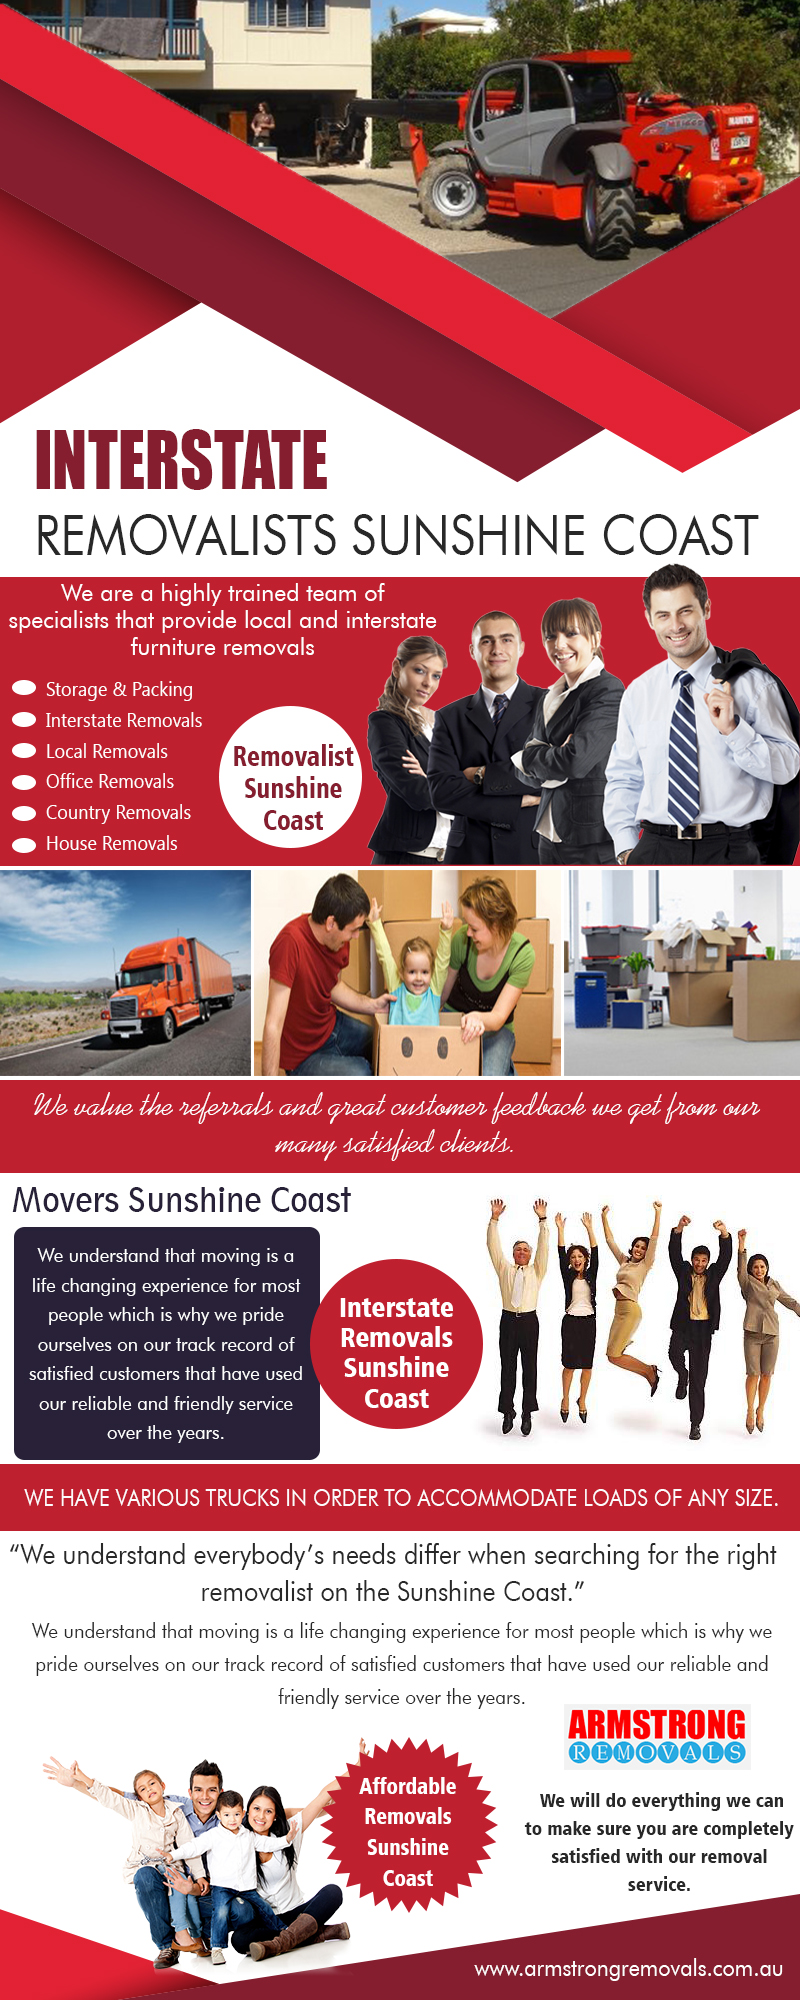 Interstate Removalists Sunshine Coast|https://armstrongremovals.com.au/